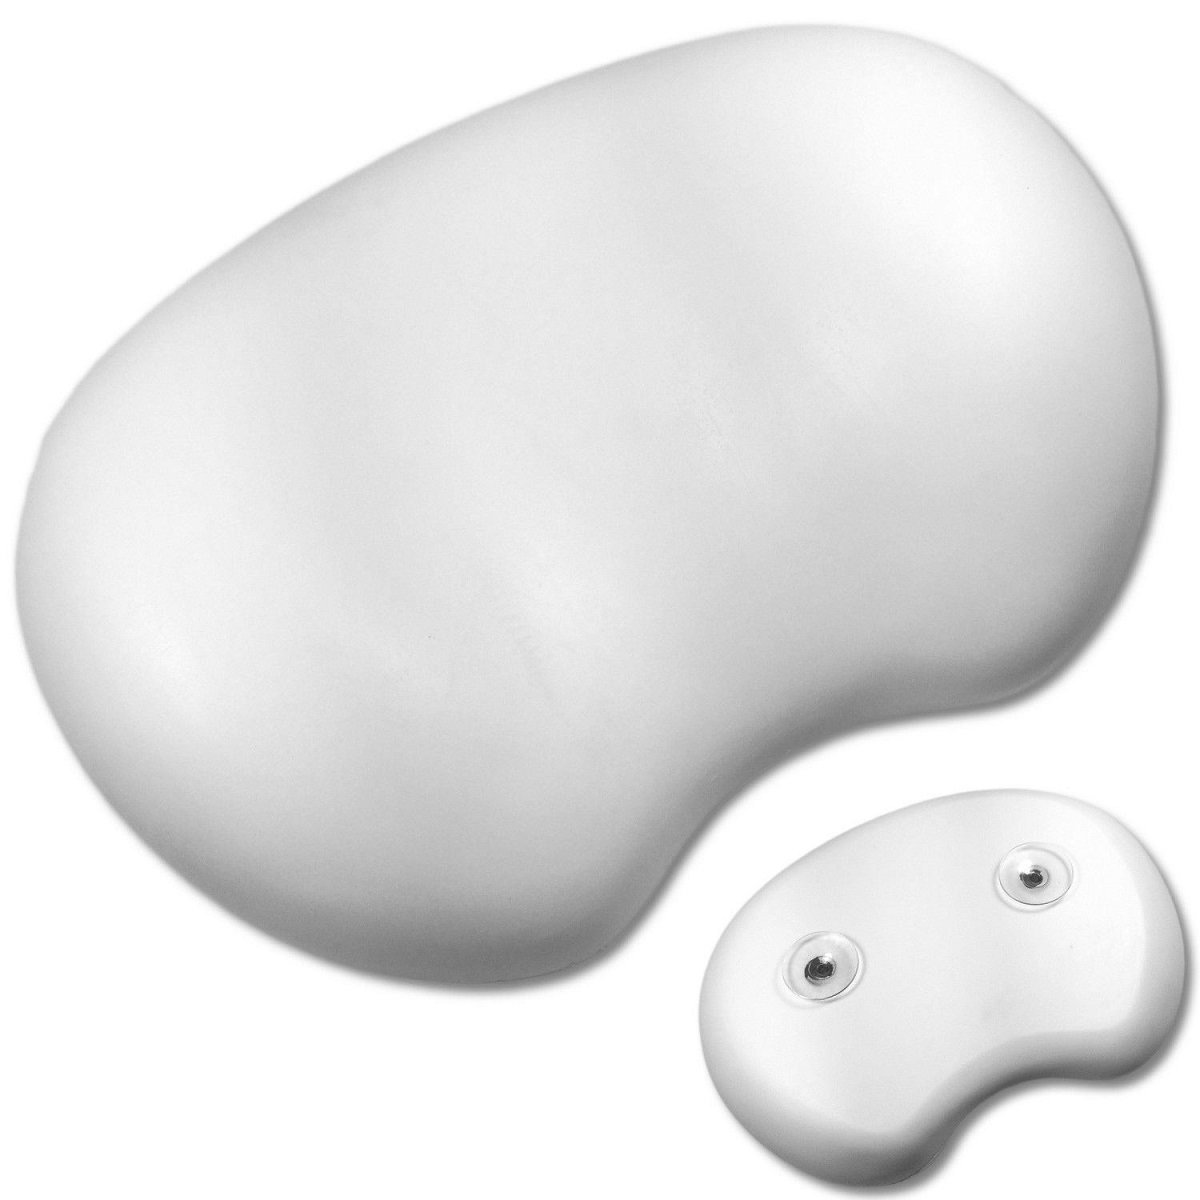 Spa Pillow Bathtub Ultimate Comfort and Spa Relaxation With Heavy Duty Suction Cups, Neck Pillow Bathtub by Bath Pillow